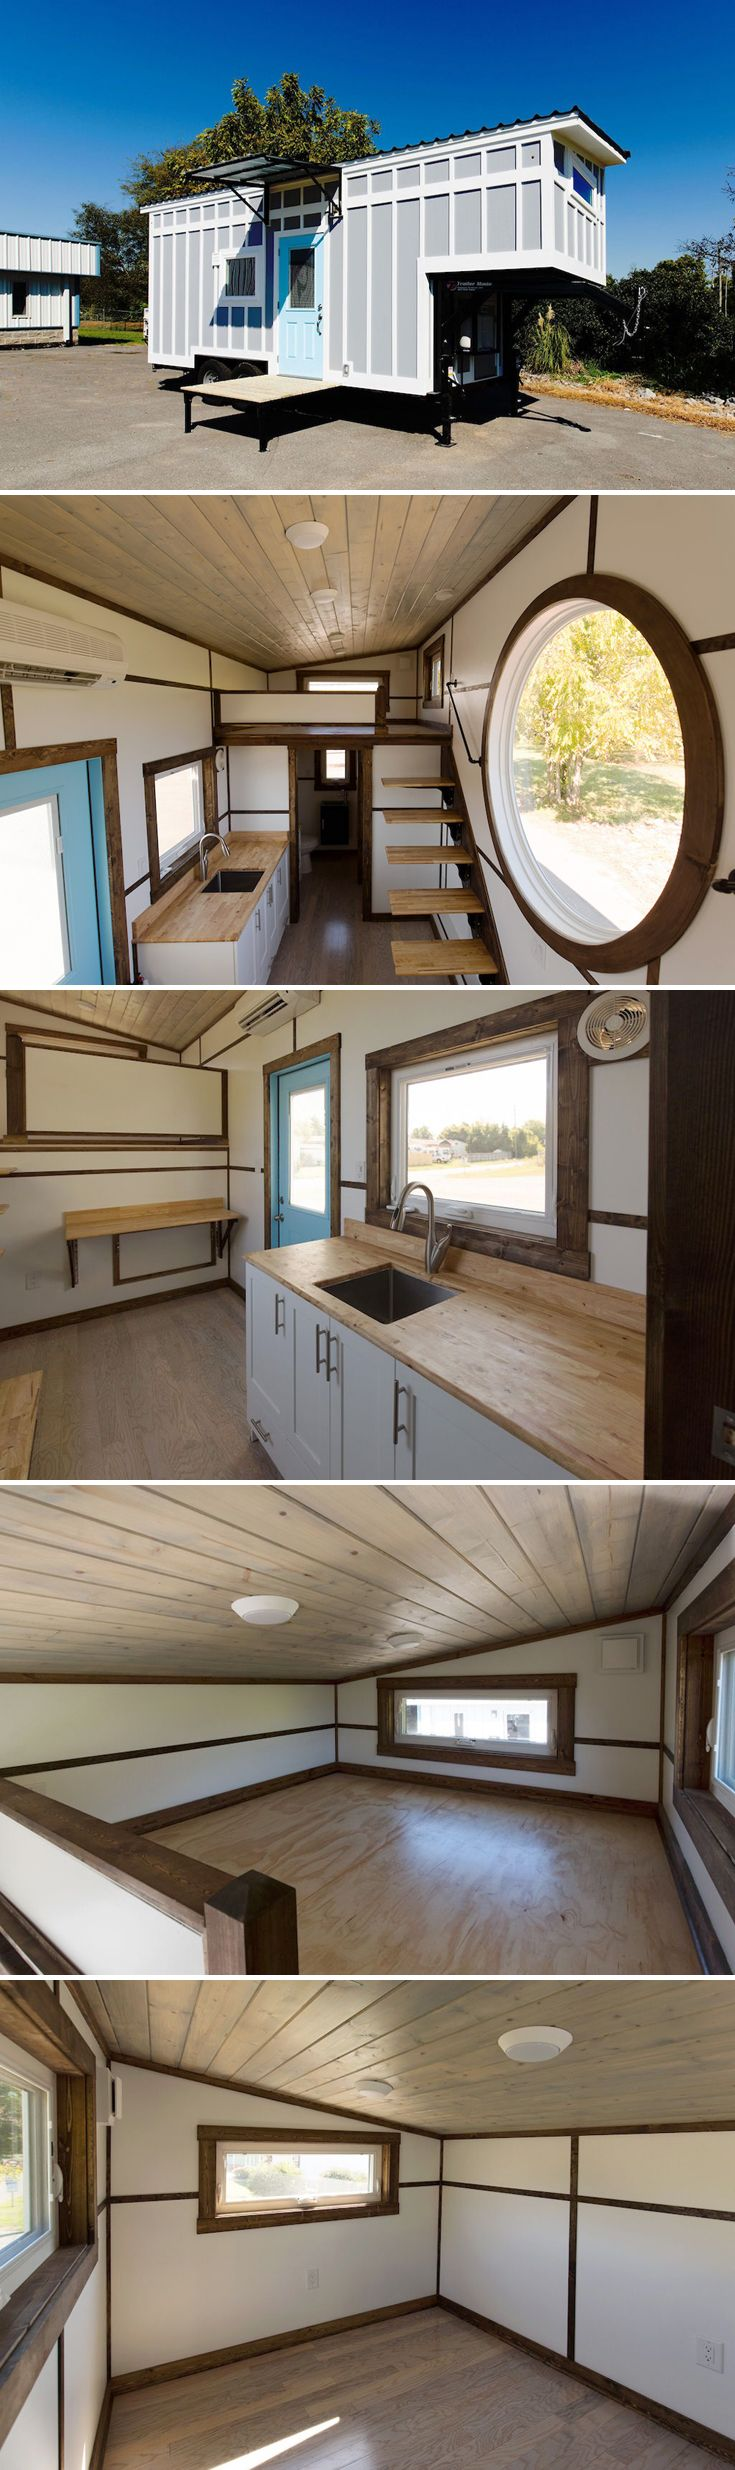 "Built by Tiny House Chattanooga, The View is a custom 20' gooseneck tiny house on wheels with large porthole window and ""V"" floating staircase."